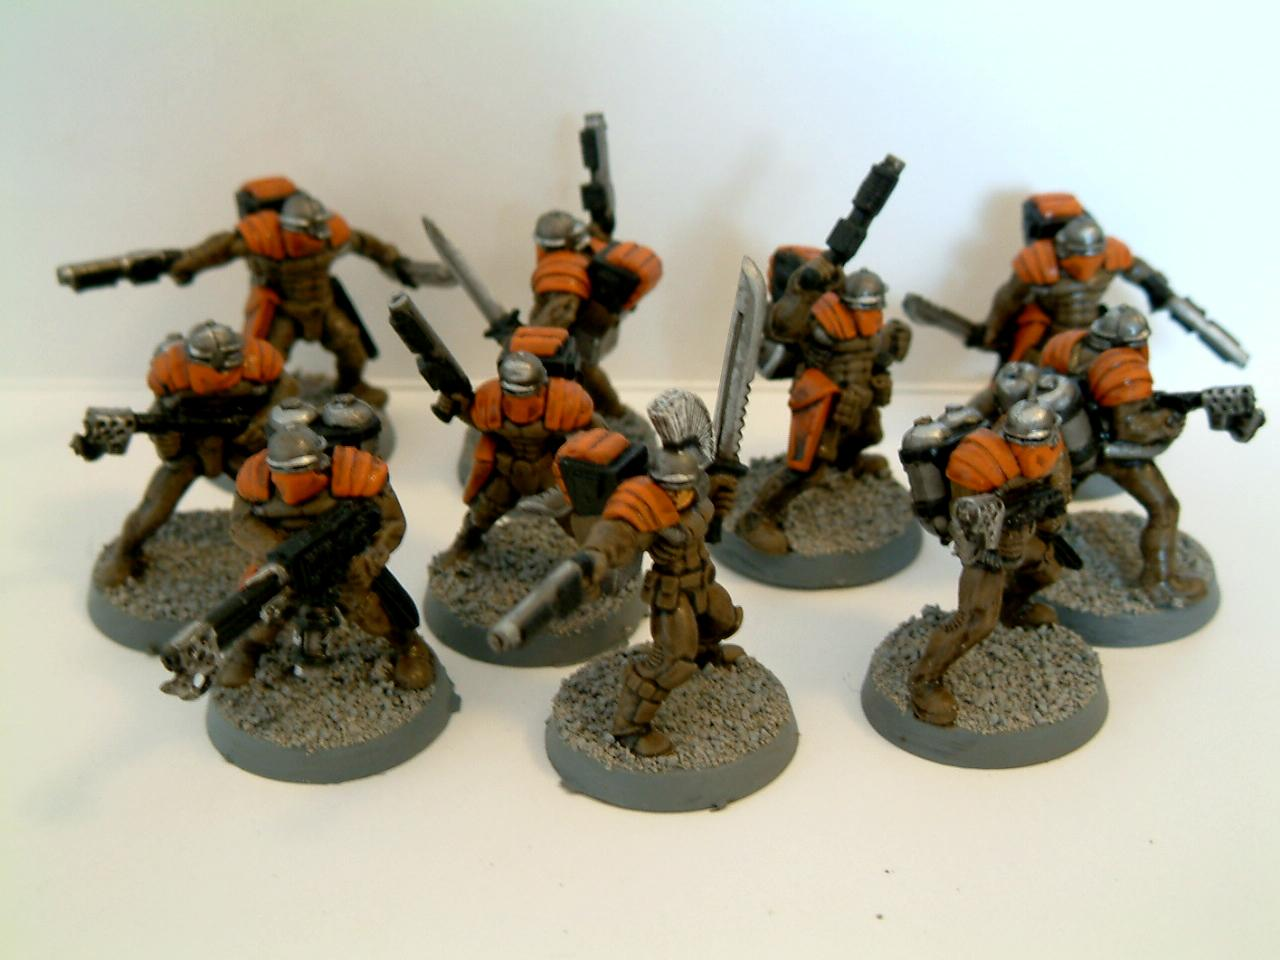 As, Conversion, Counts, Guard, Imperial, Junkers, Legion, Penal, Shotgun, Void